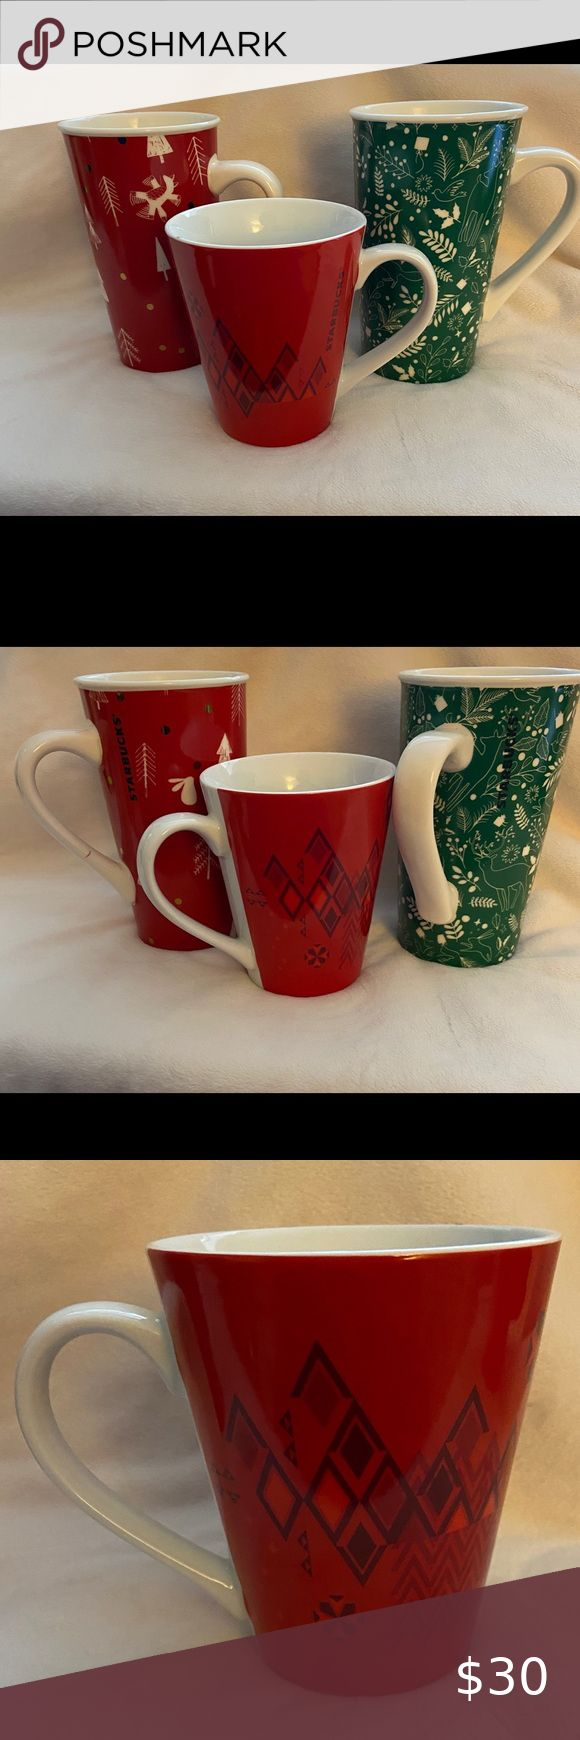 Starbucks Holiday Coffee Mugs in 2020 | Holiday coffee ...